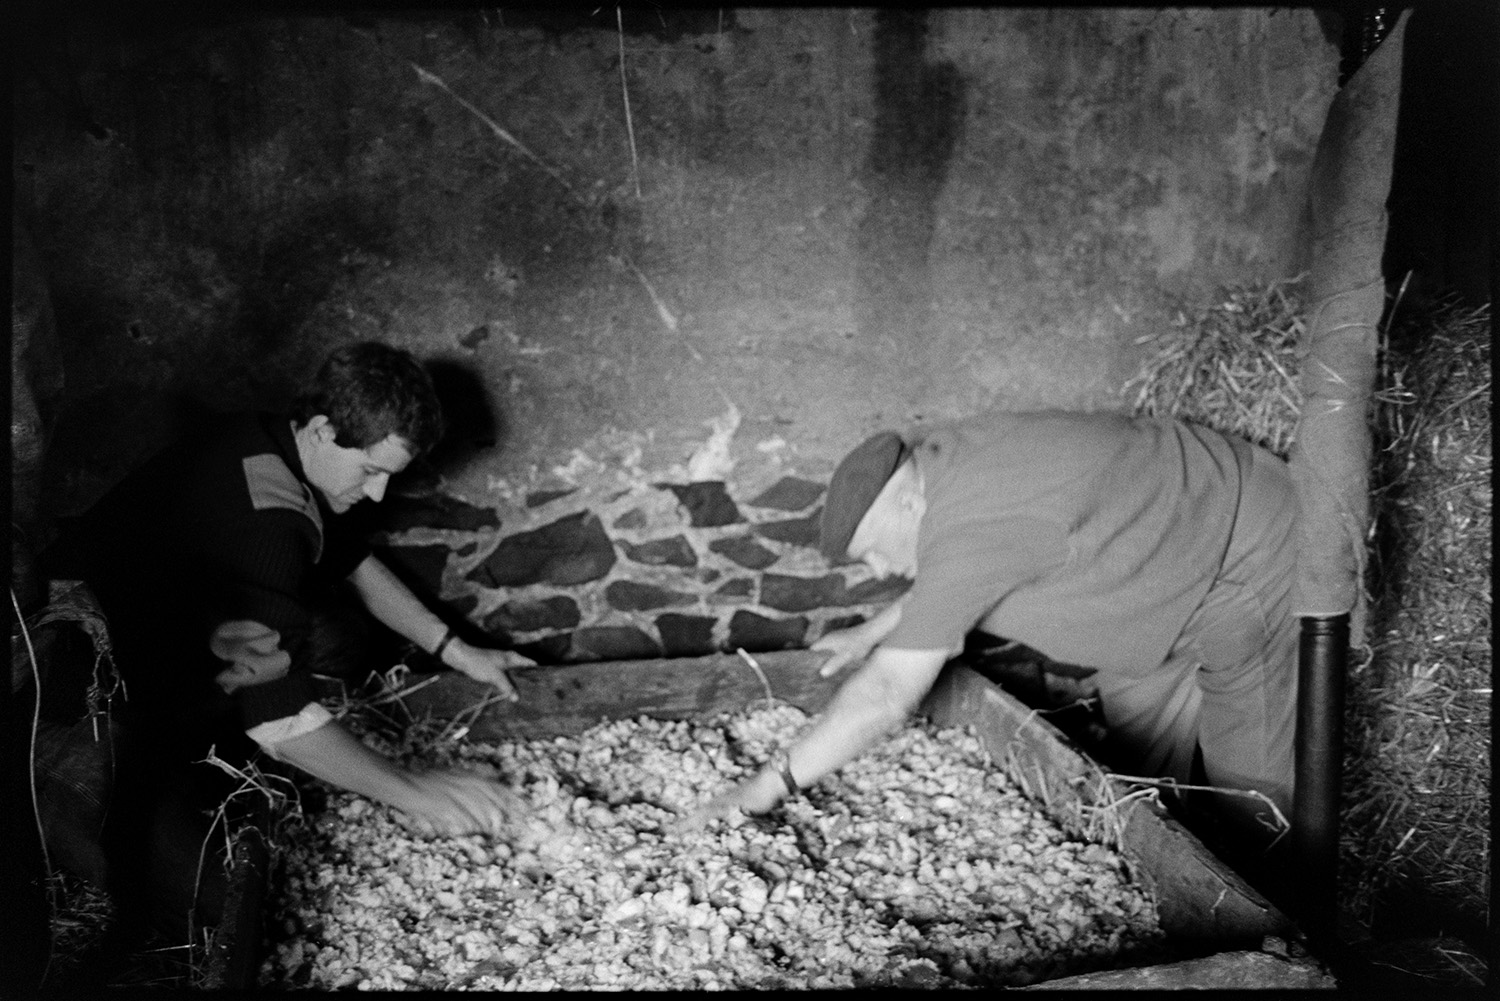 Farmers pressing cider in barn. Putting apples in crusher. See b02767 in the Old Archive for picture of Bill Bending ploughing in 1941?<br /> [Bill Bending, on the right, and another man spreading apple pulp in a cider press in a barn at Spittle, near Chulmleigh.]